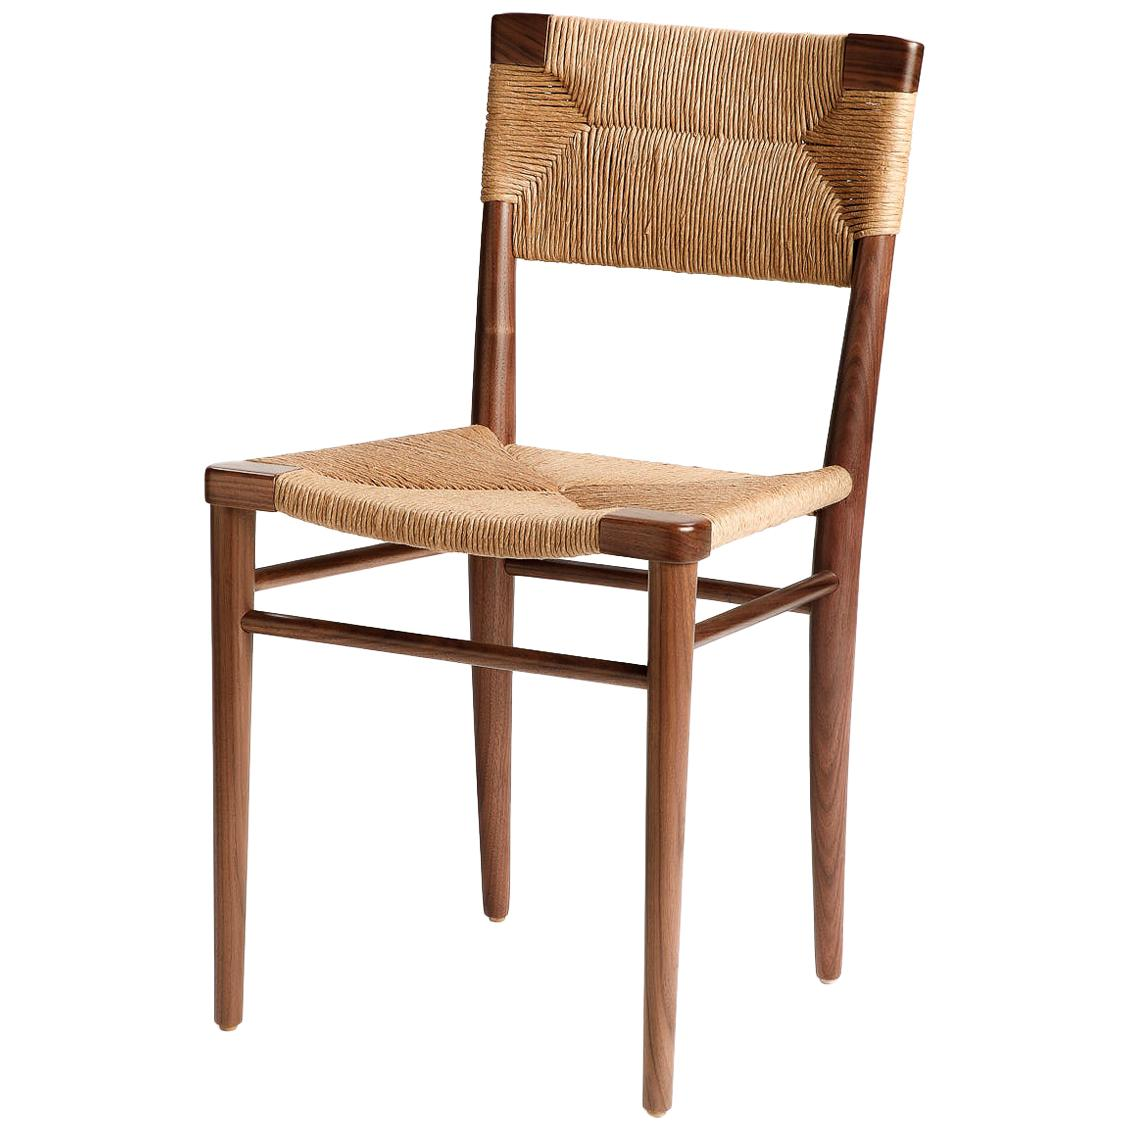 Woven Rush-Backed Dining Side Chair by Mel Smilow